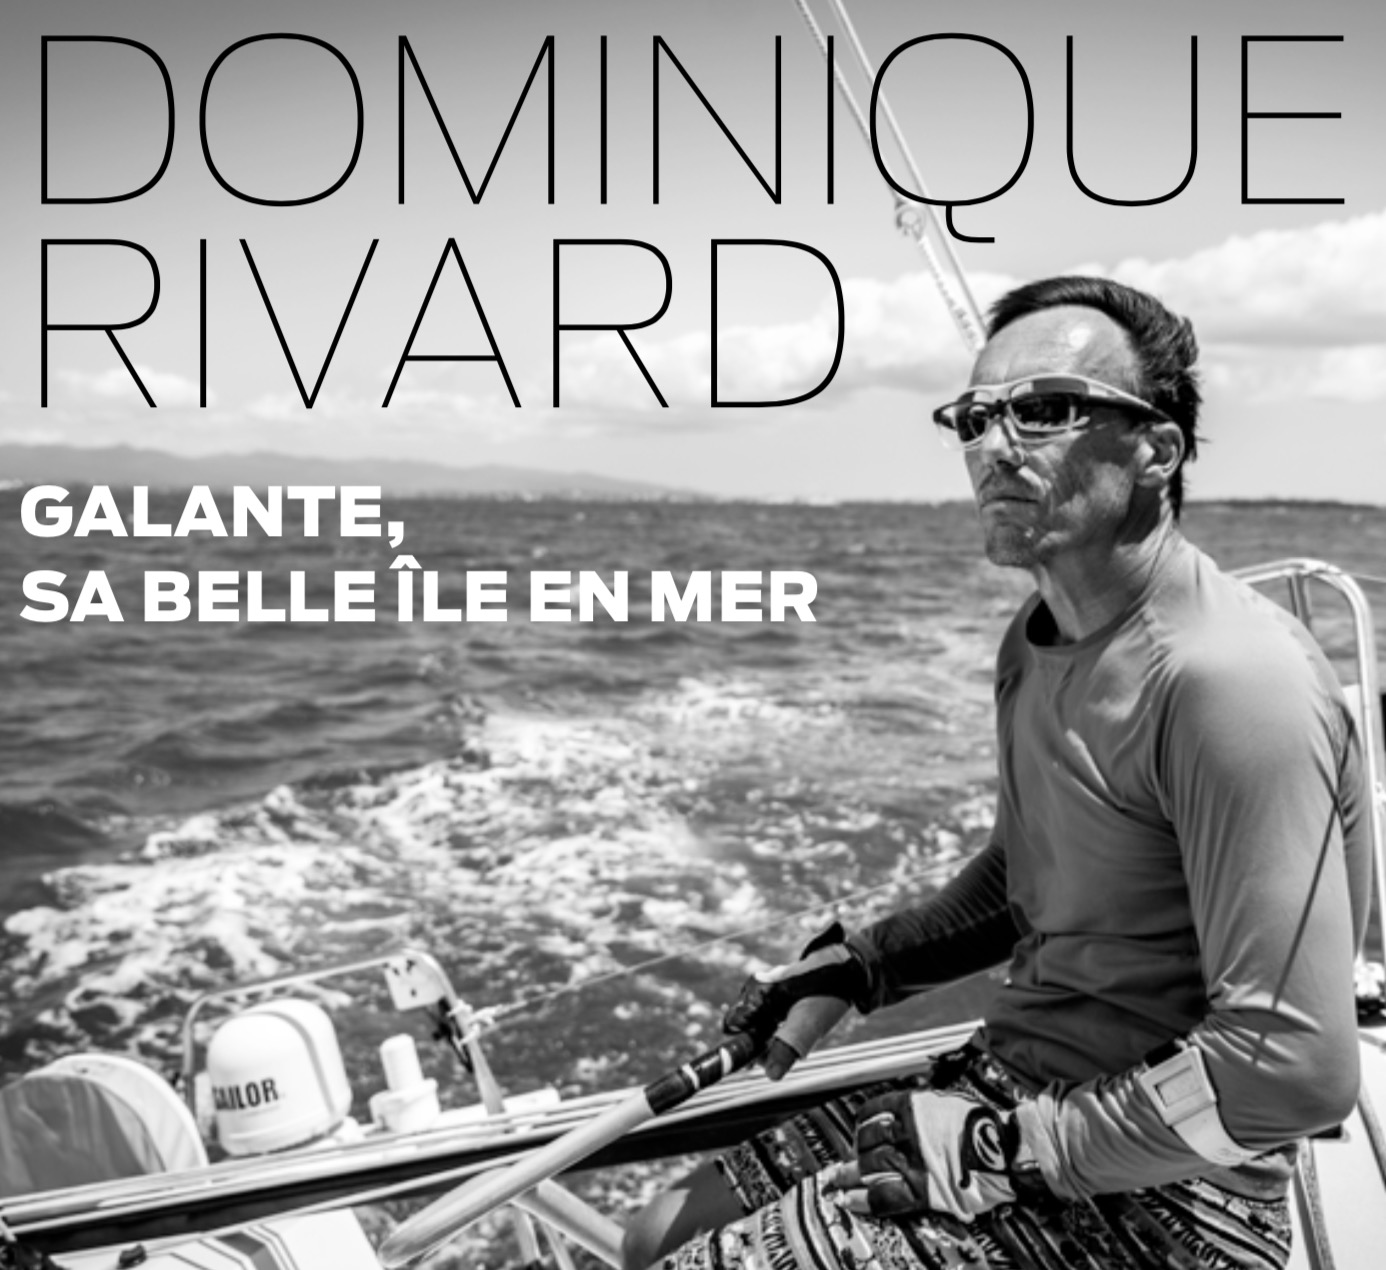 Dominique Rivard Galante